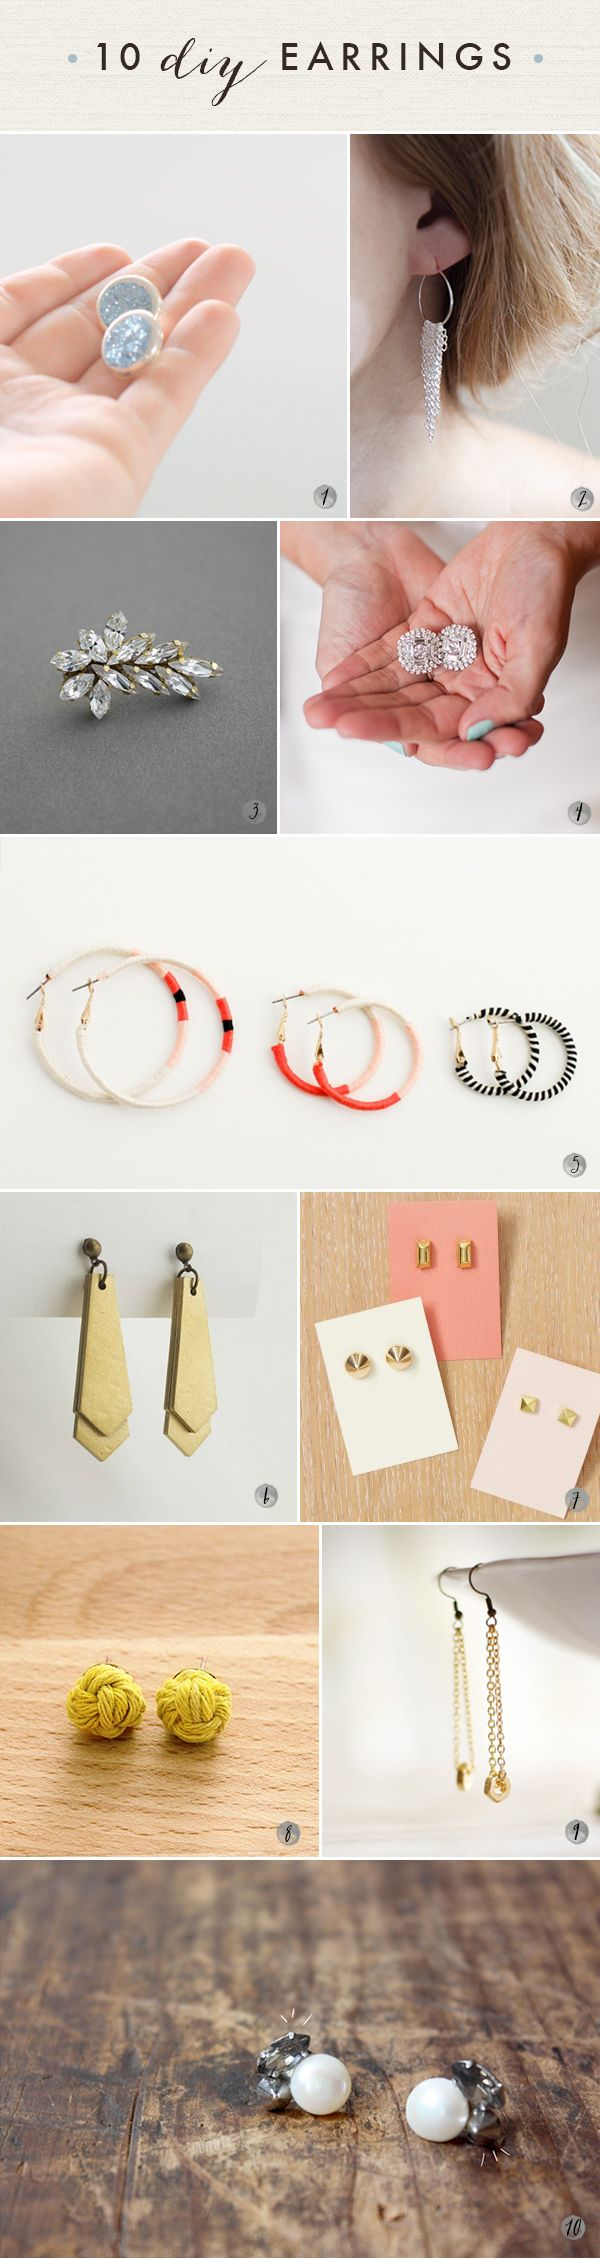 10 DIY Earrings